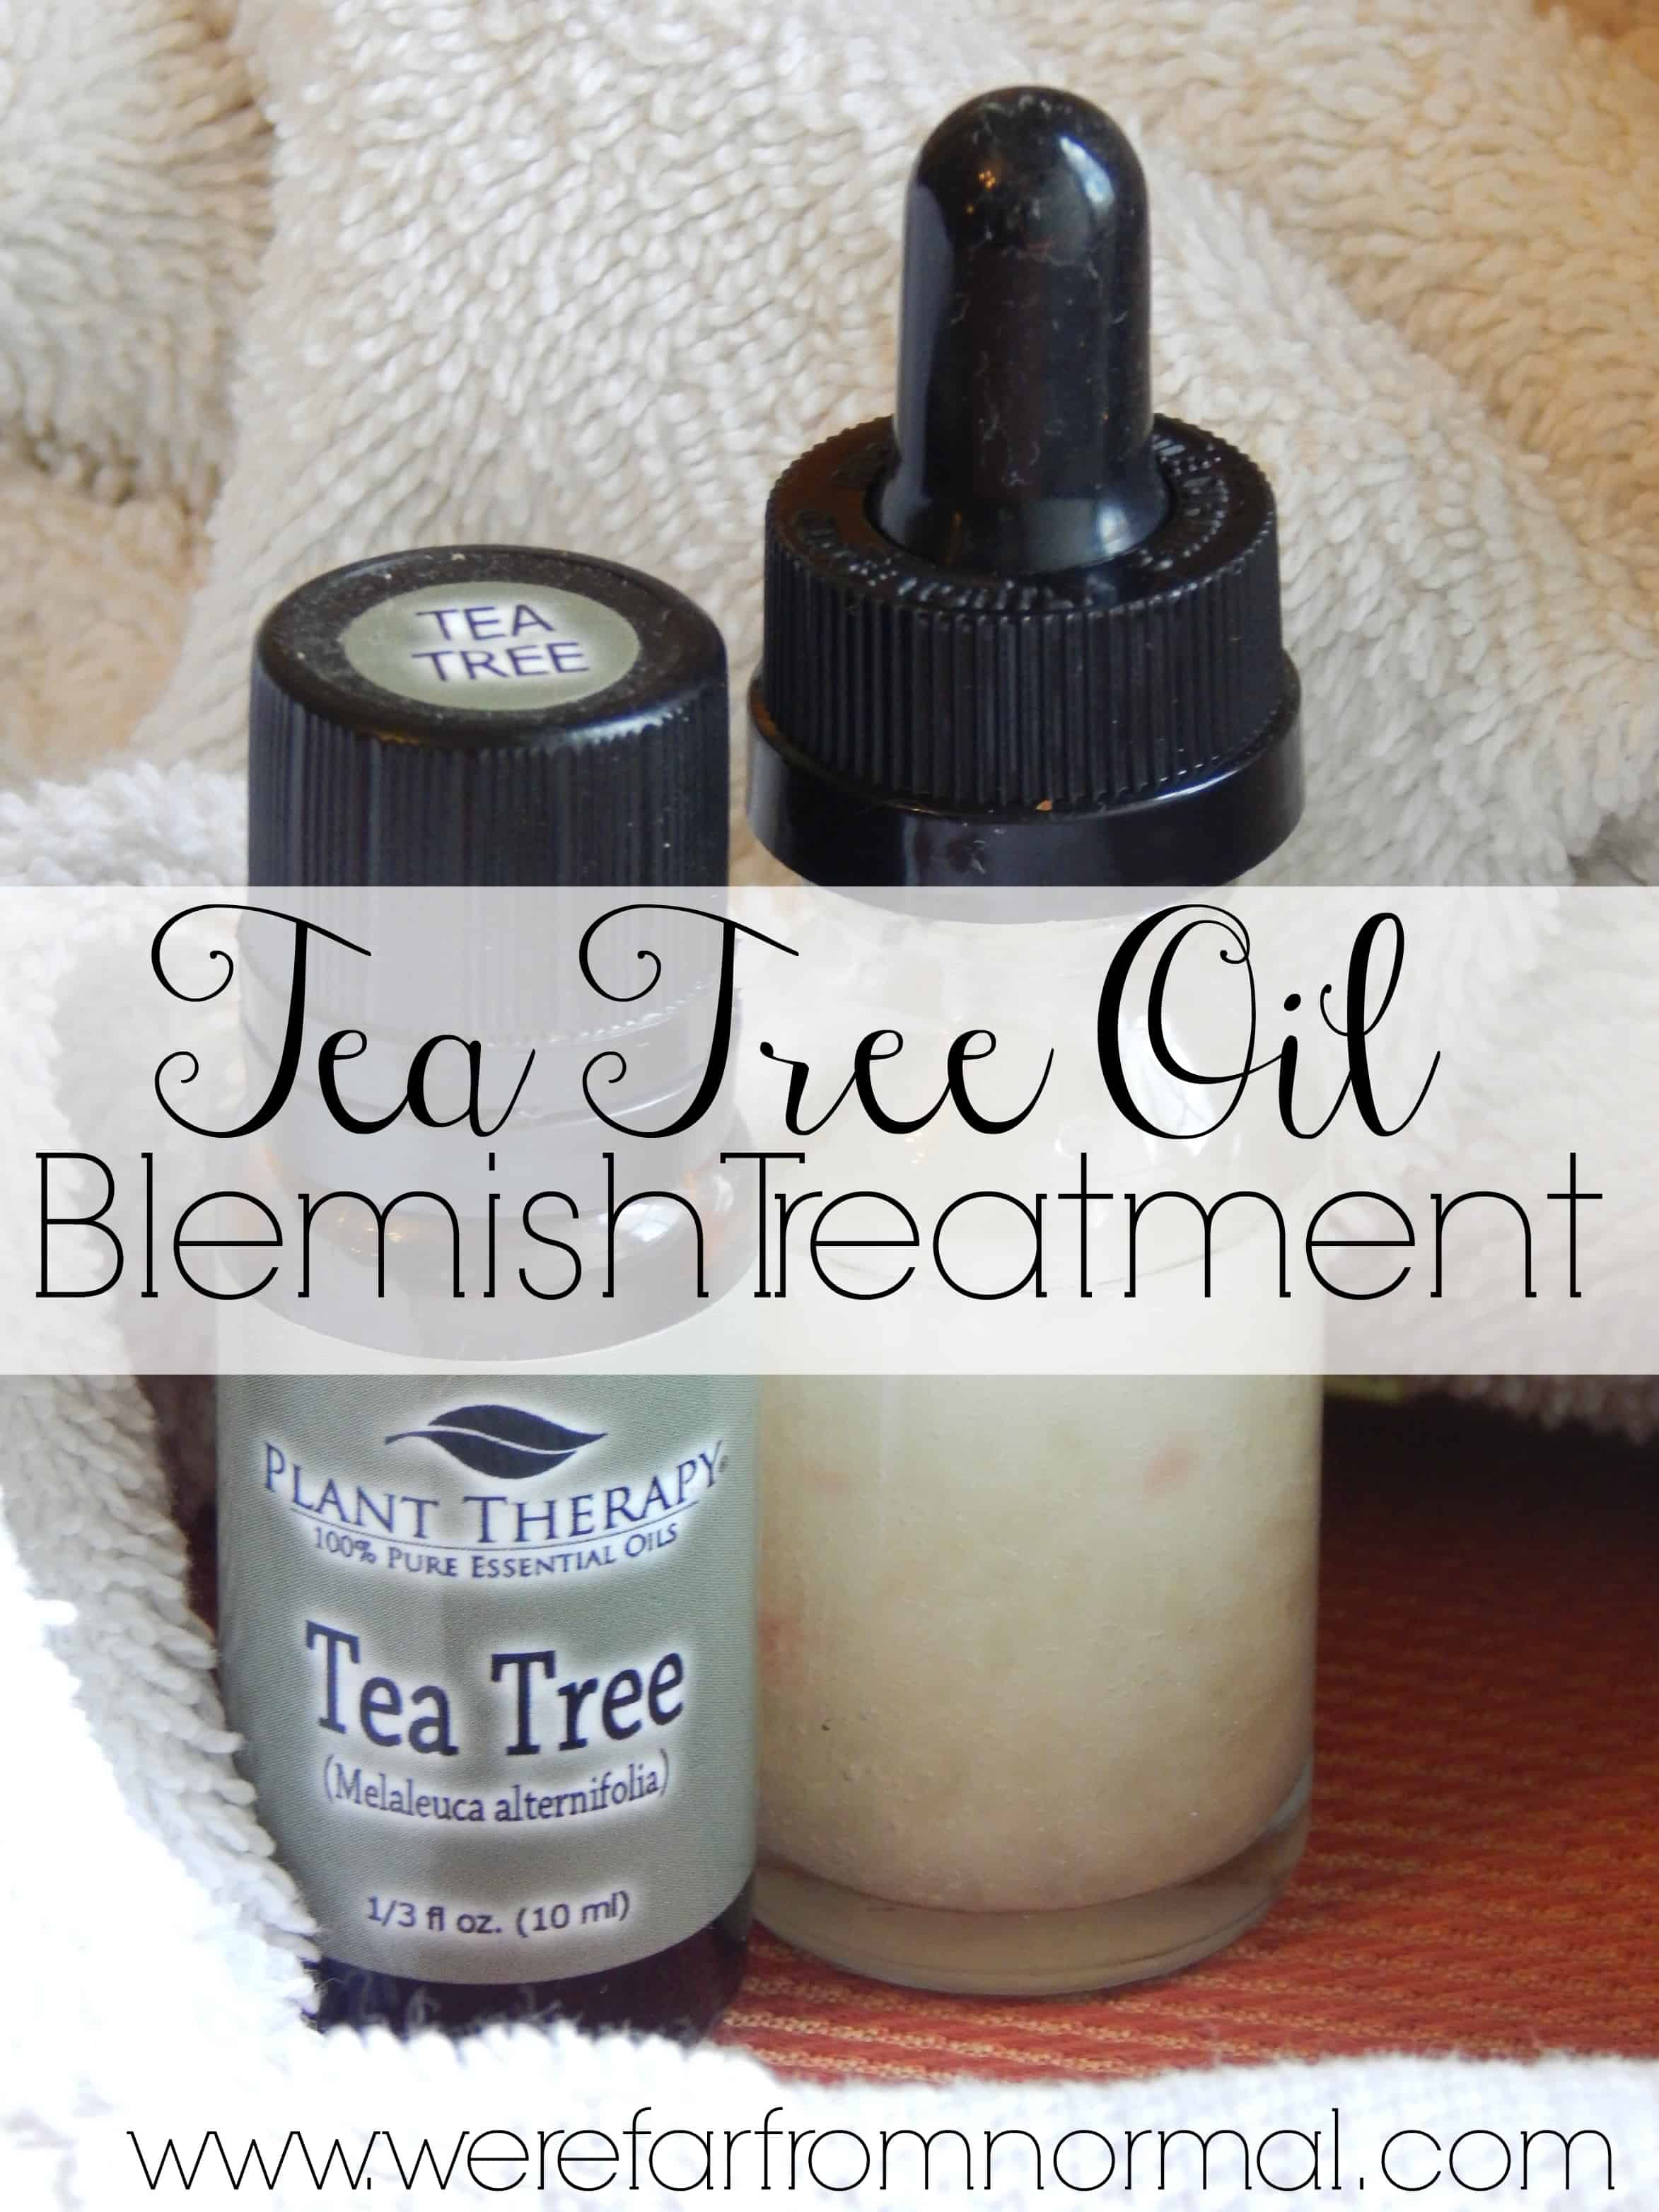 Tea Tree Oil Blemish Treatment